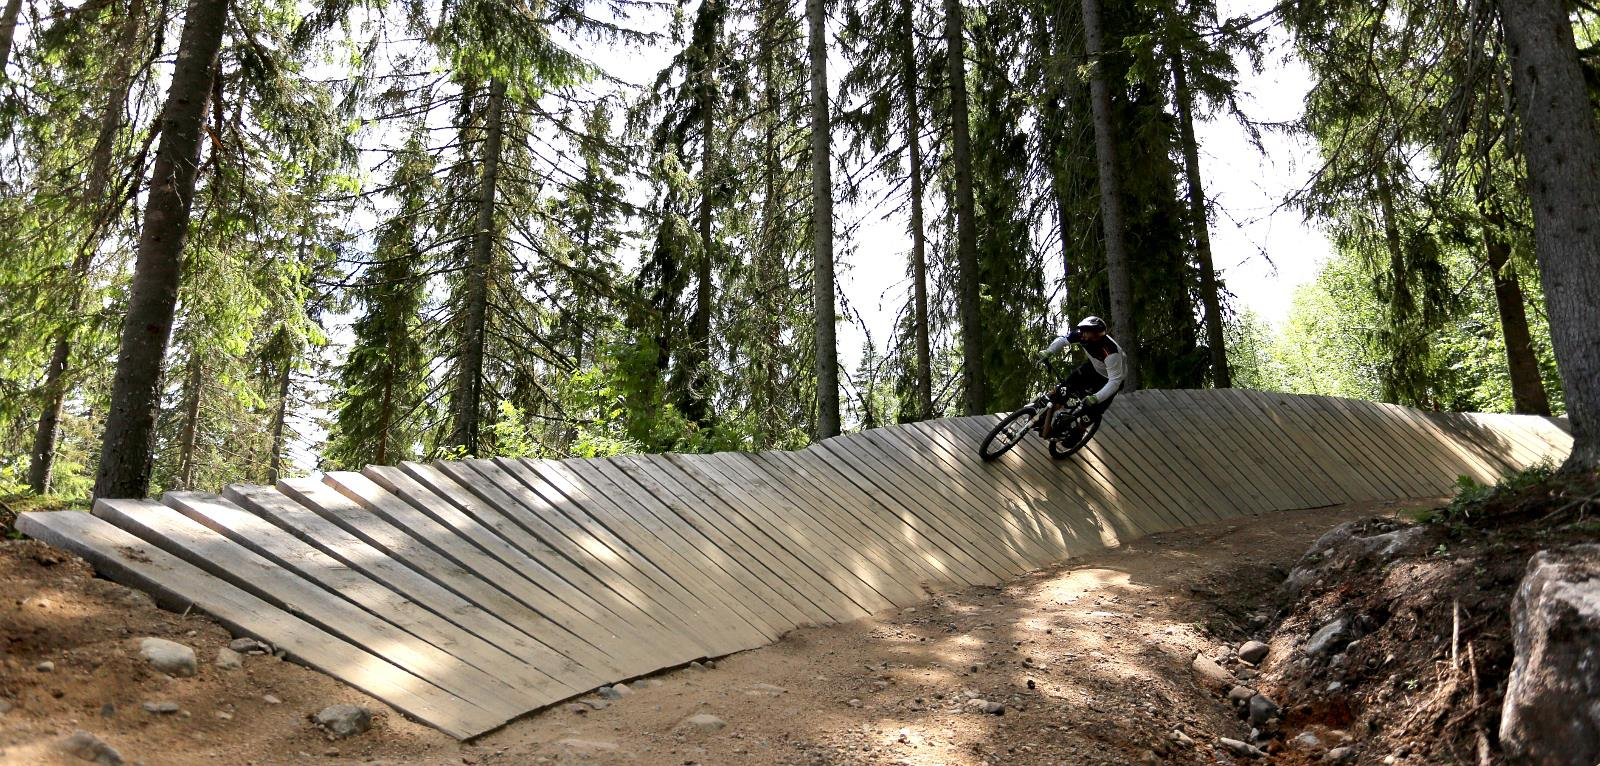 Wall ride, Järvsö